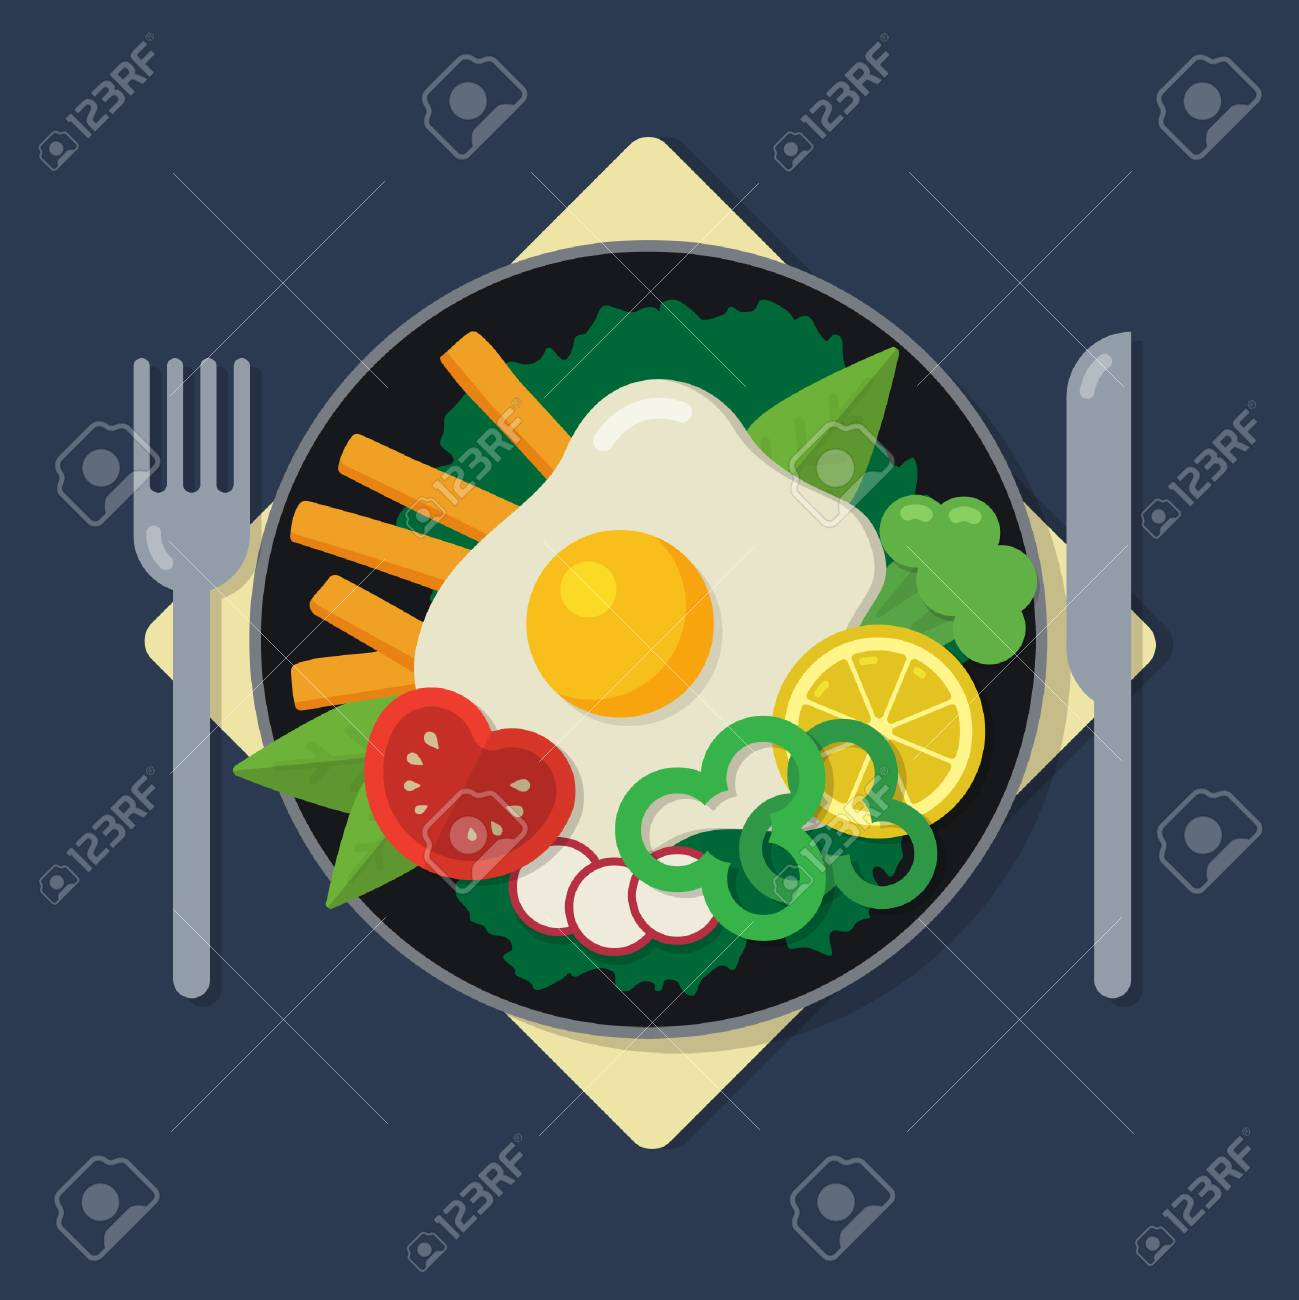 Healthy Breakfast Flat Illustration A Plate With Omelette Salad Royalty Free Cliparts Vectors And Stock Illustration Image 85329298